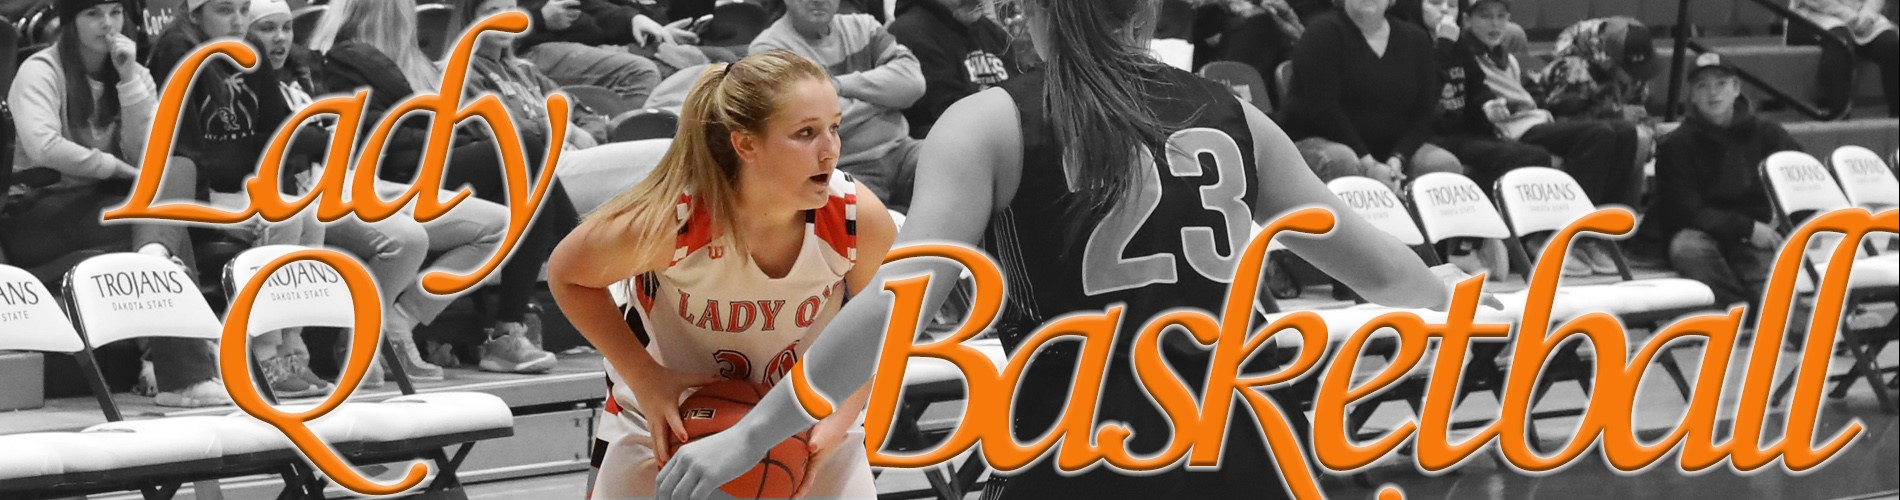 Dell Rapids Lady Q basketball